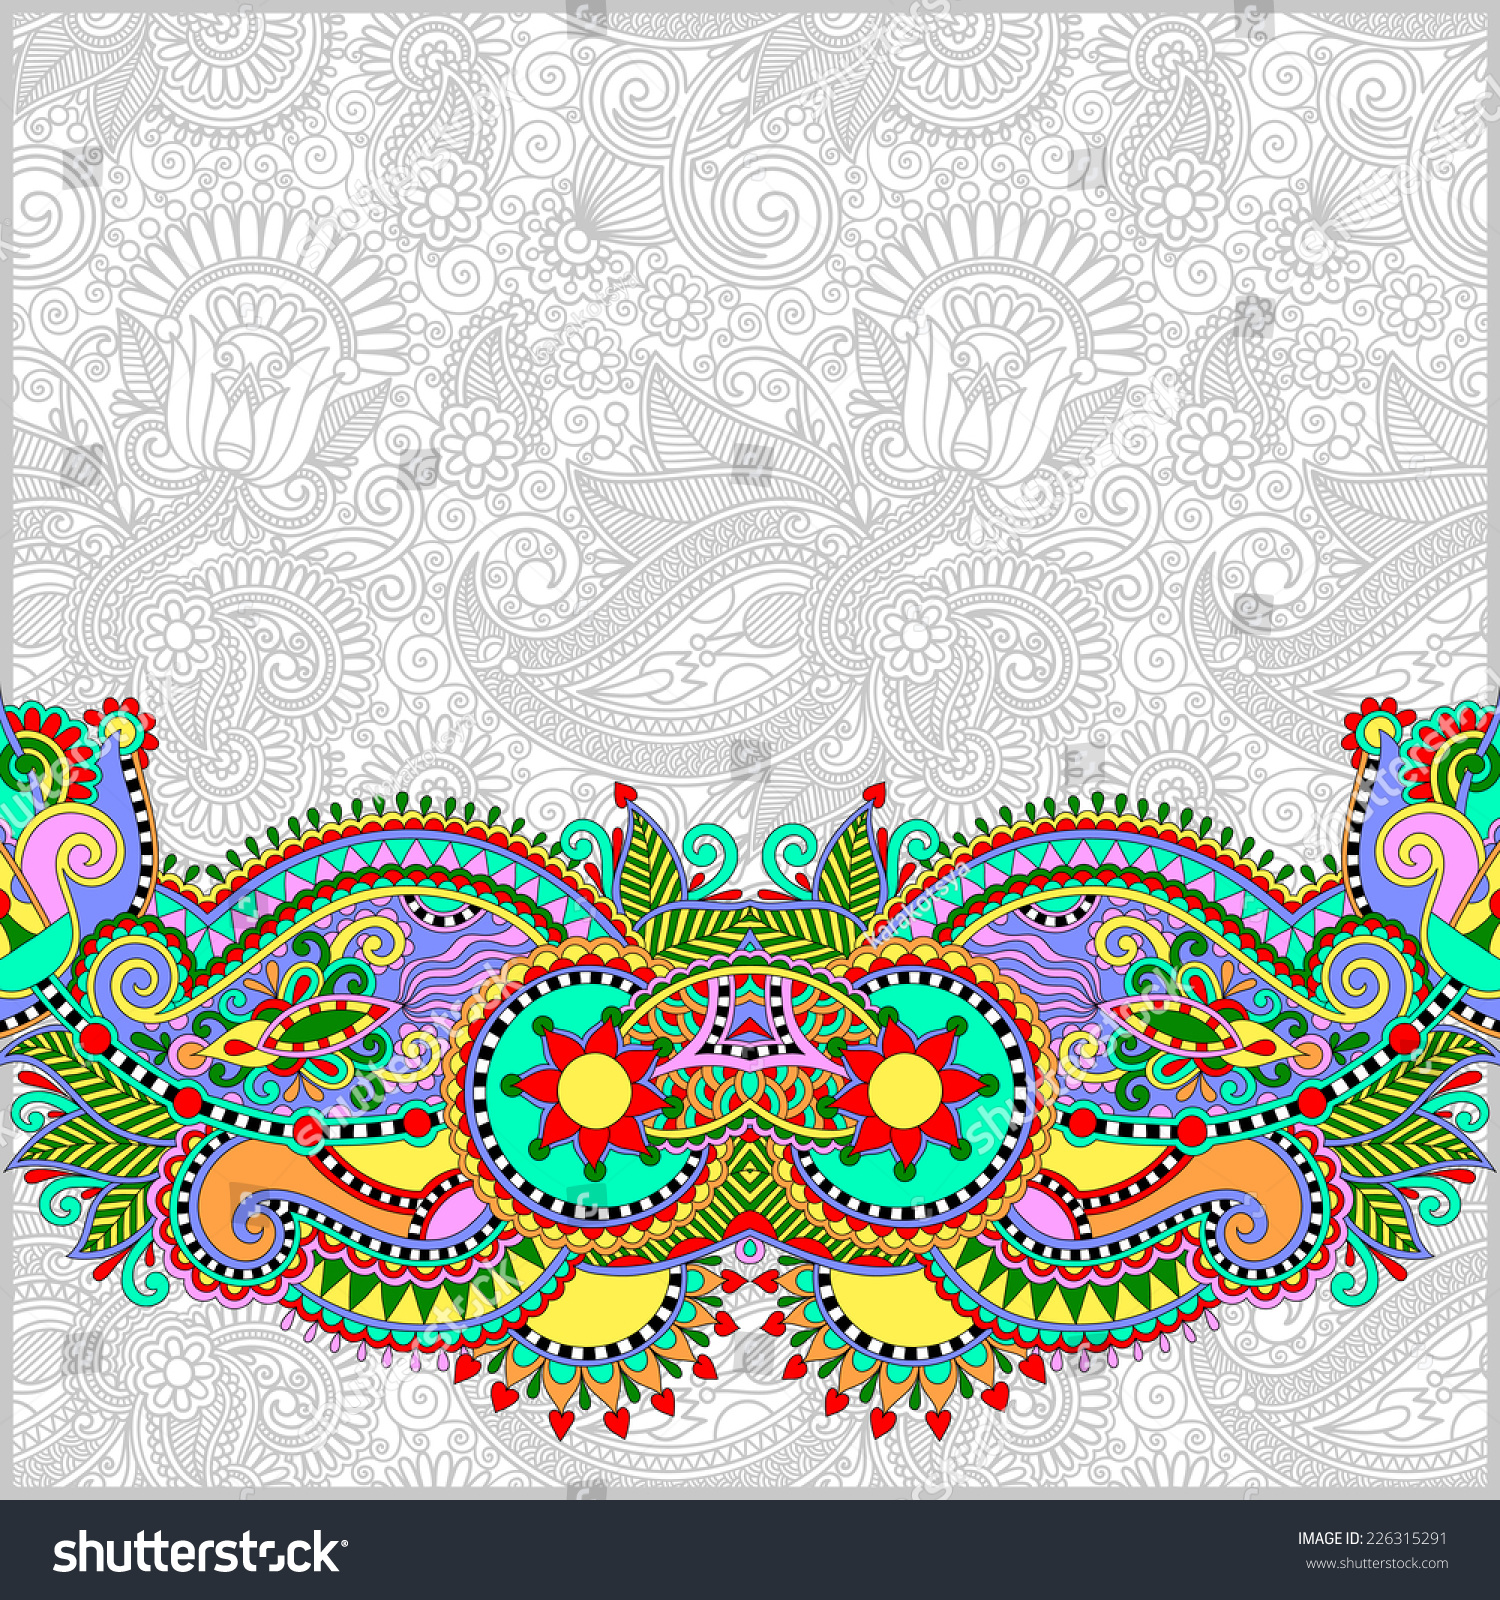 Paisley Design On Decorative Floral Background Stock Vector Royalty